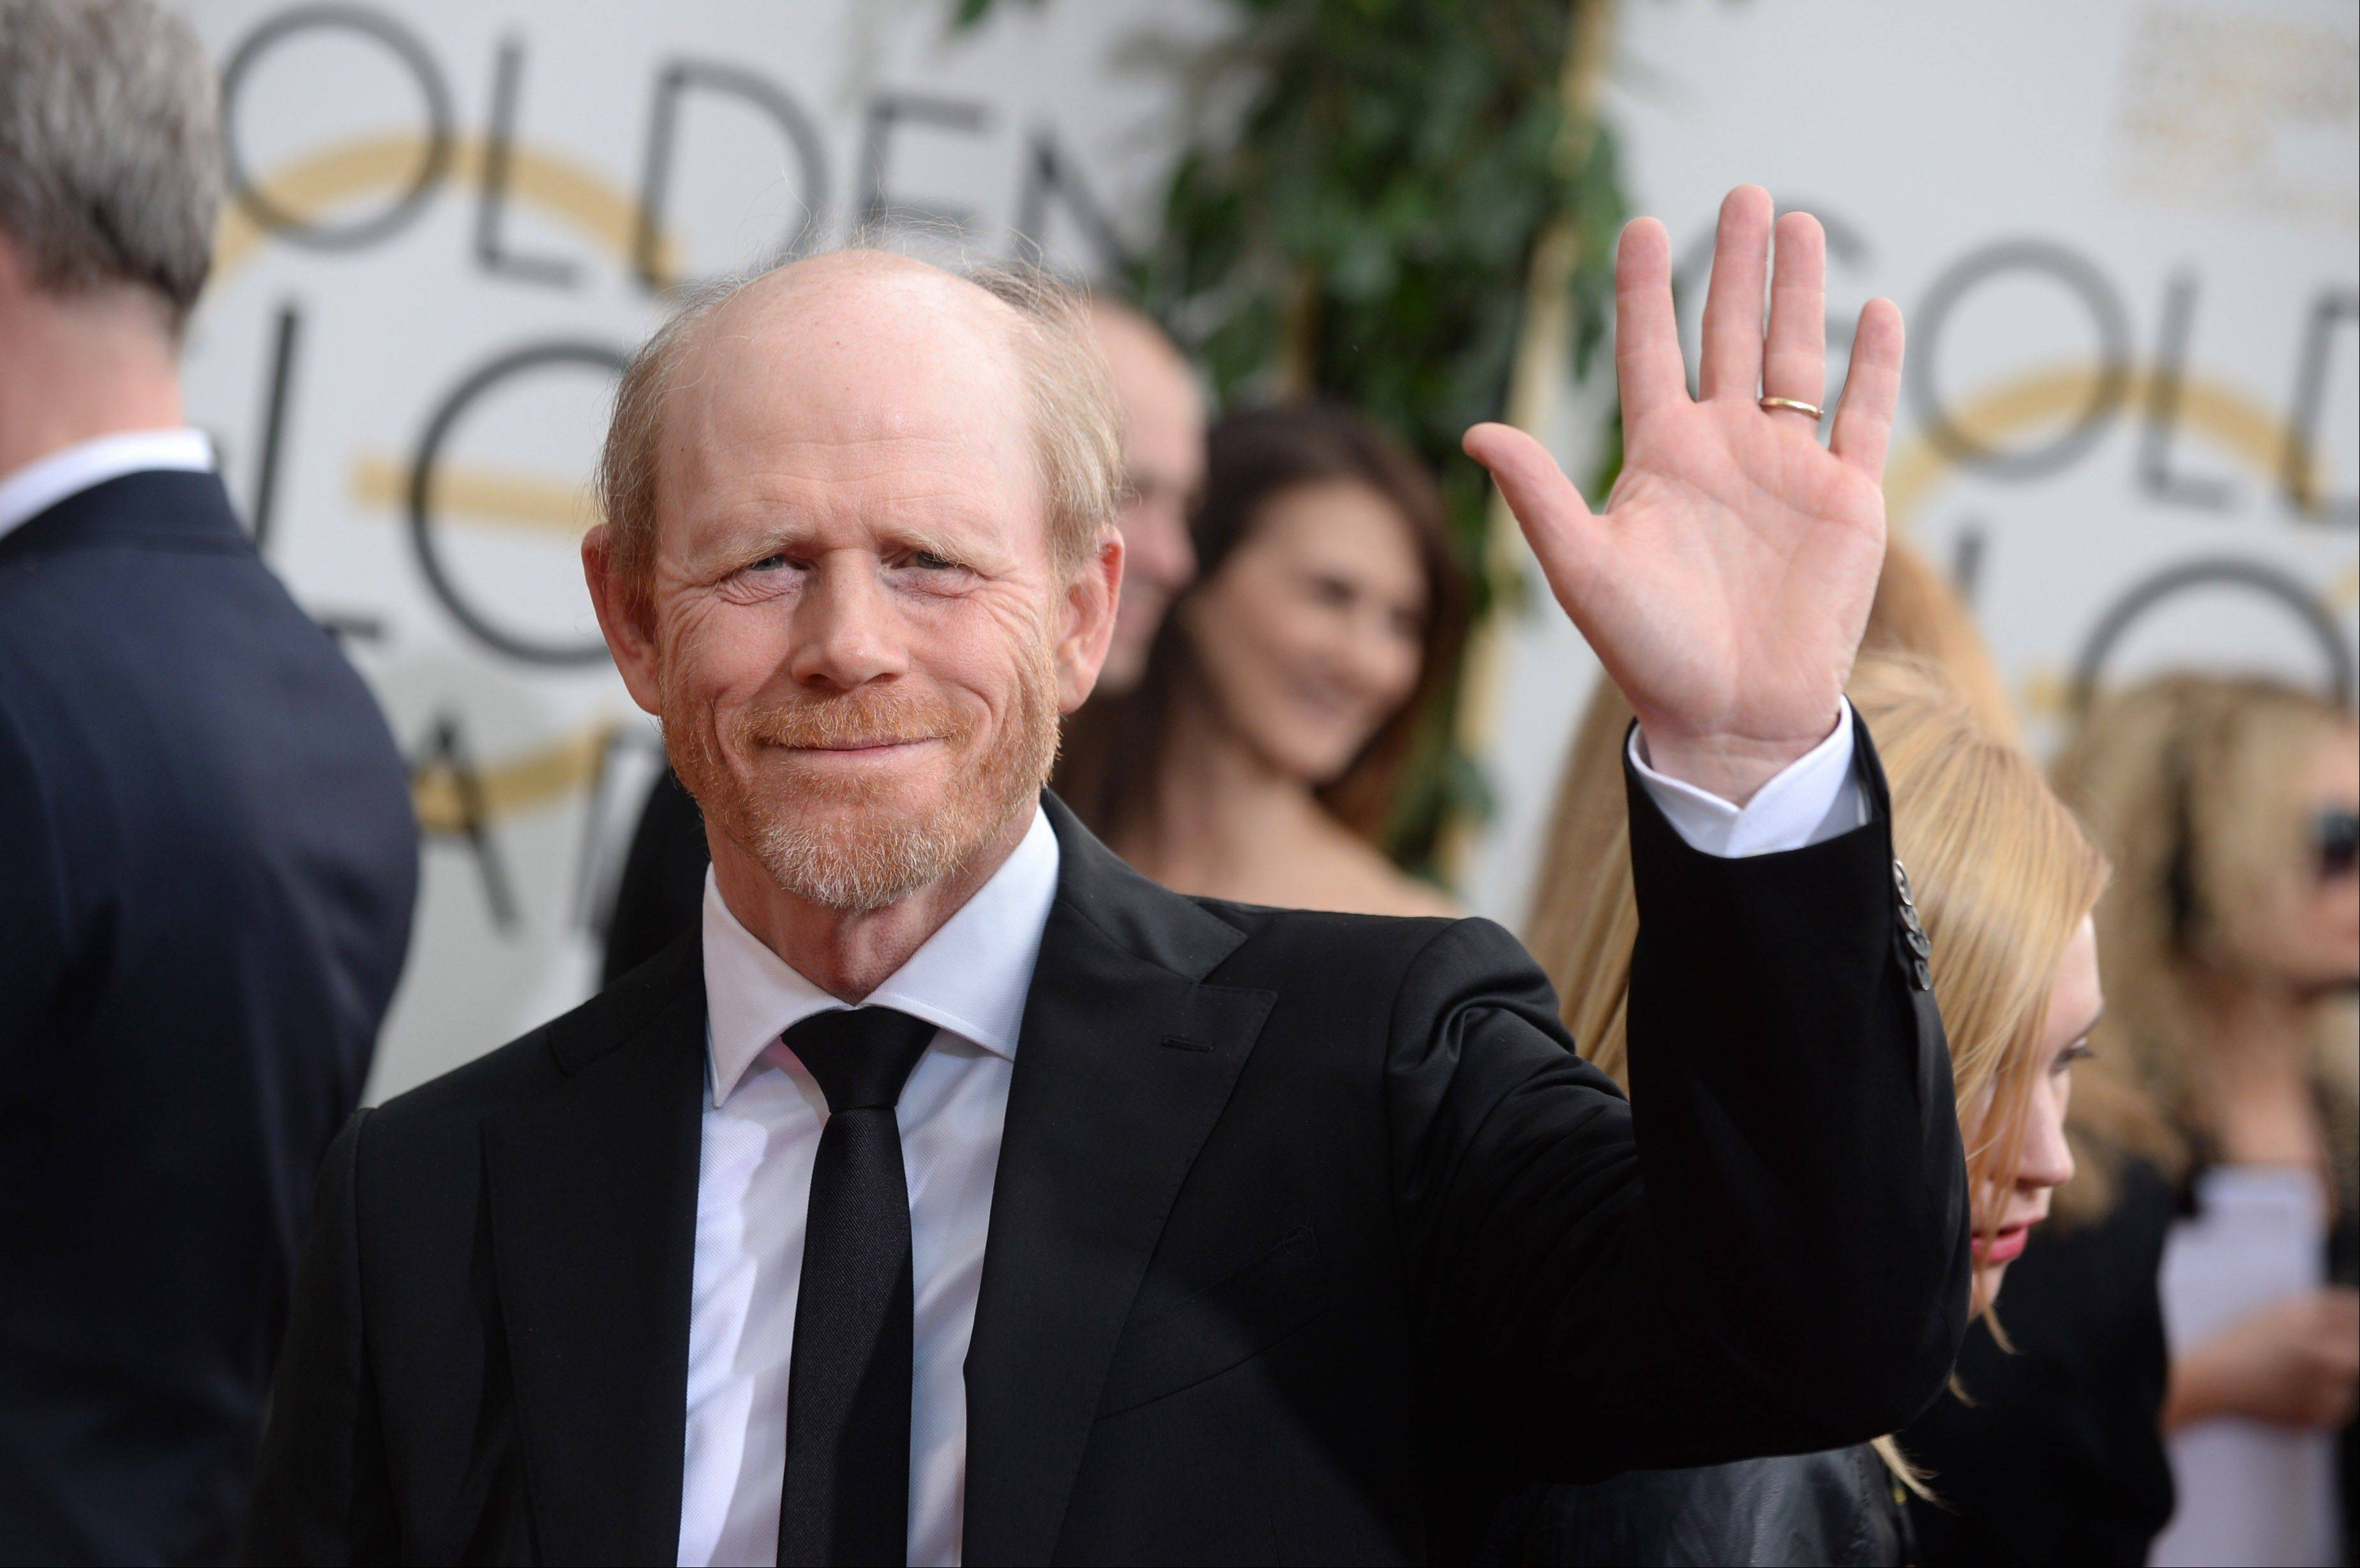 """Rush"" director Ron Howard arrives at the 71st annual Golden Globe Awards at the Beverly Hilton Hotel."